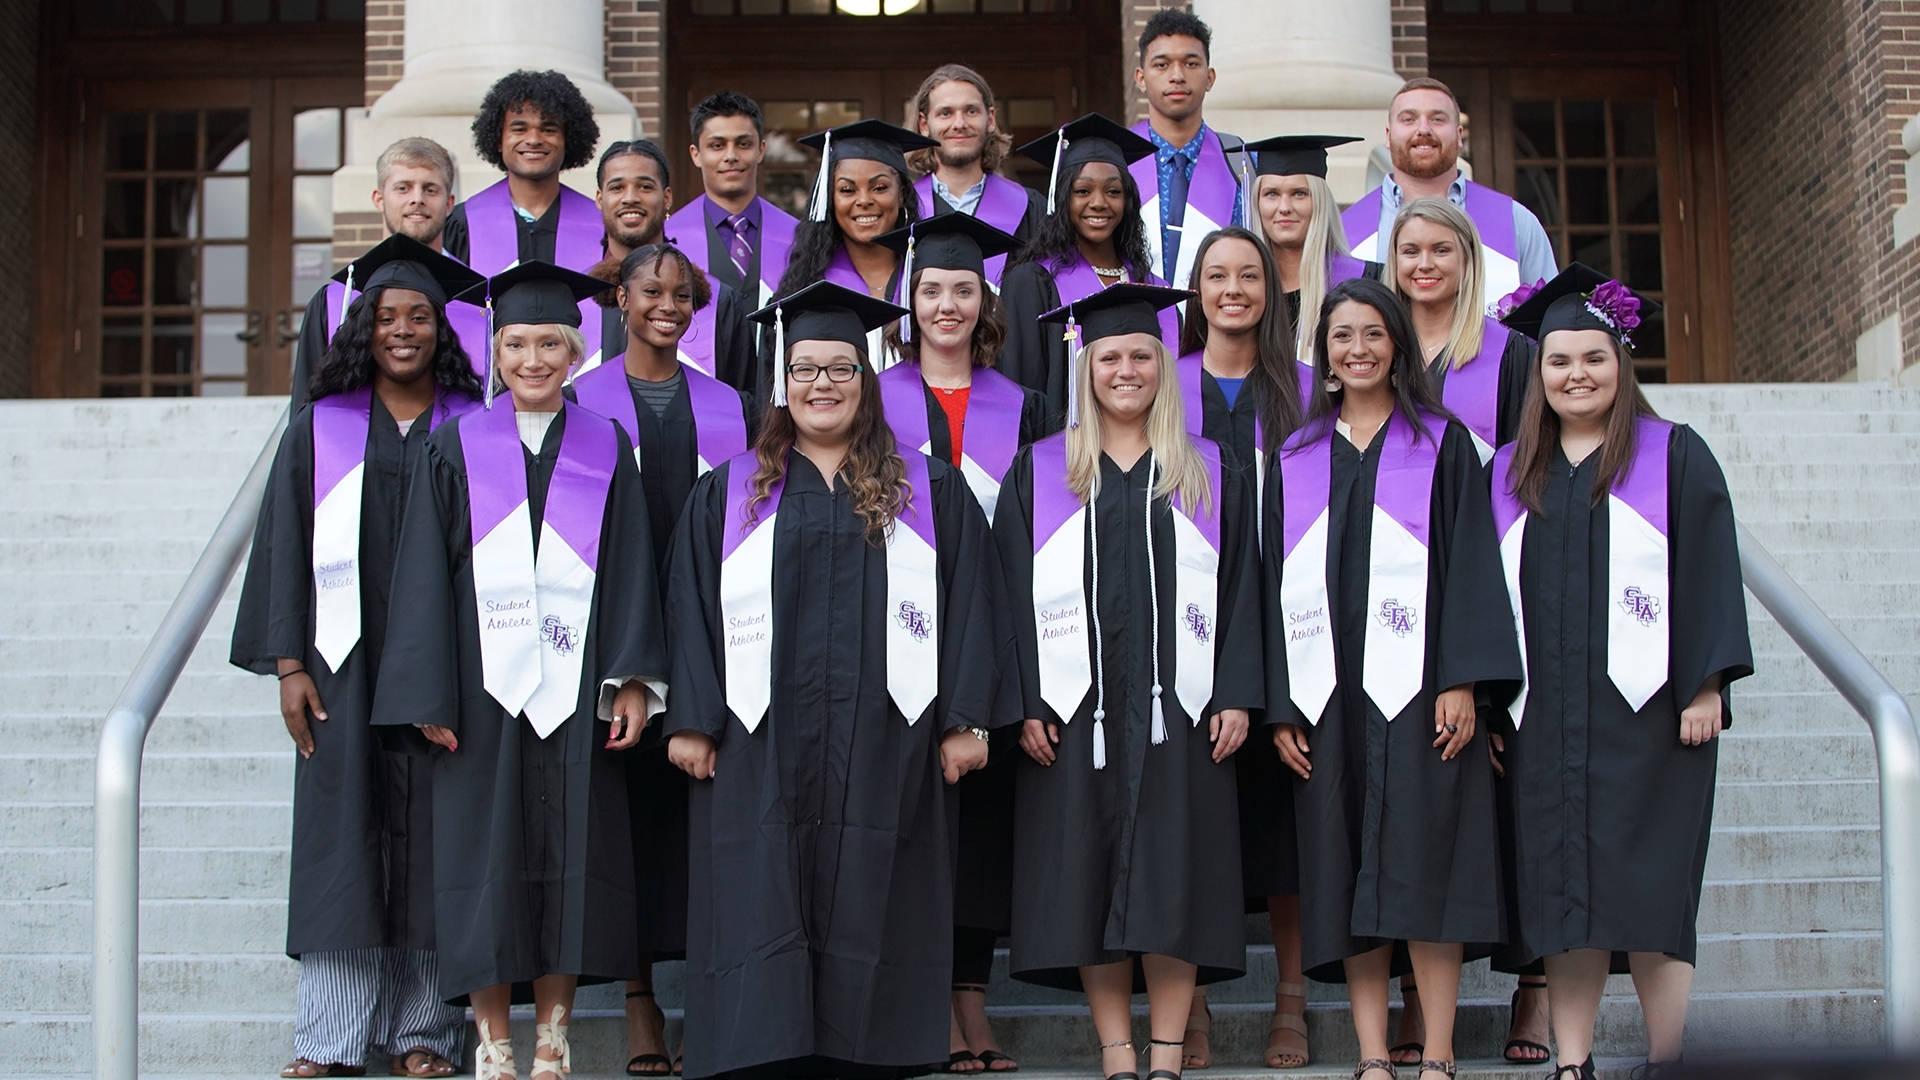 Sfa Student-Athletes Receive Degrees In Spring 2019 for Stephen F Austin Spring 2020